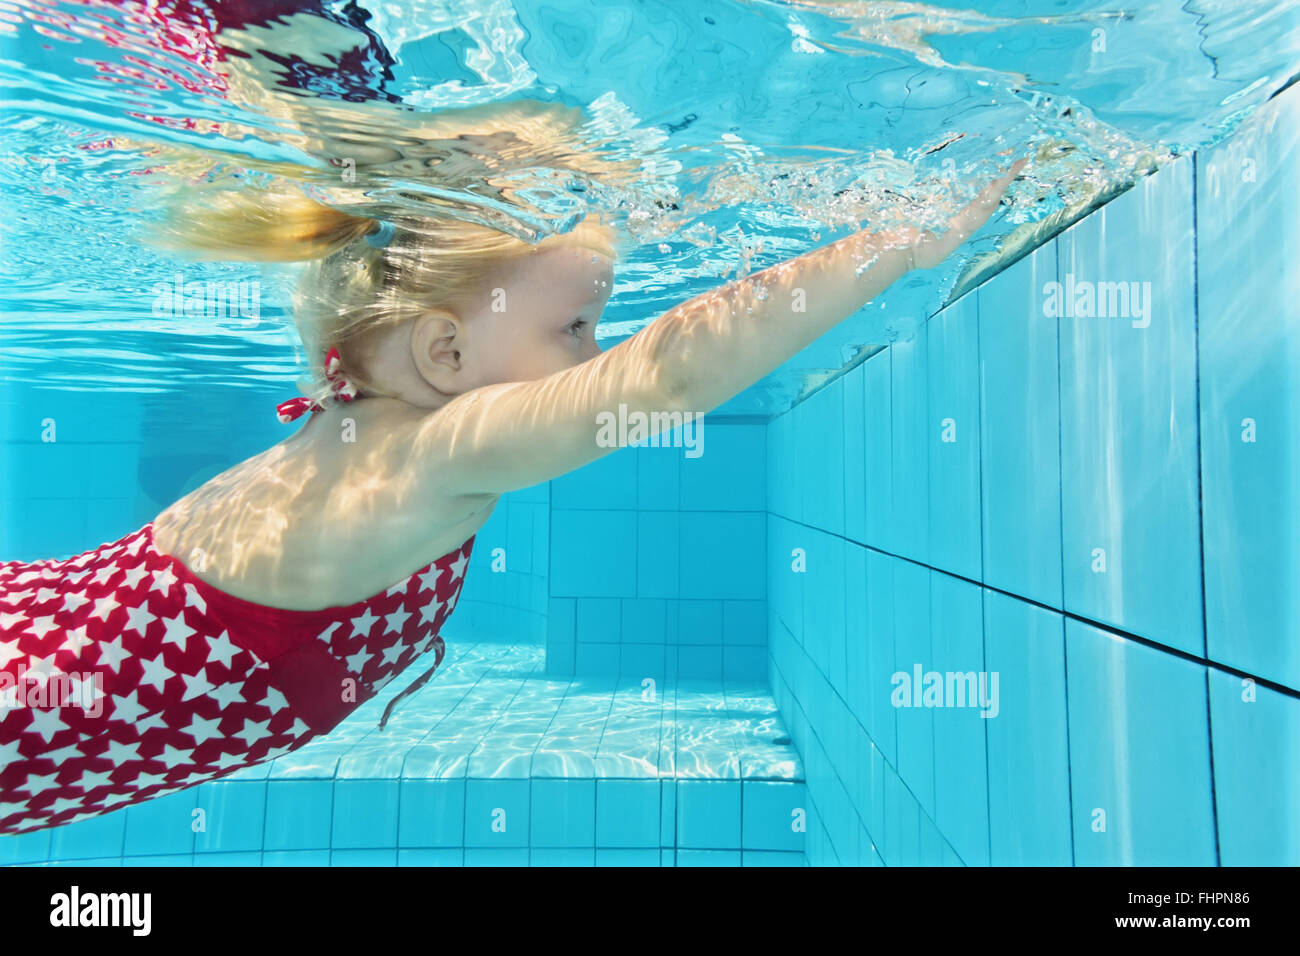 Child swimming lesson - girl learning to dive underwater in pool. - Stock Image